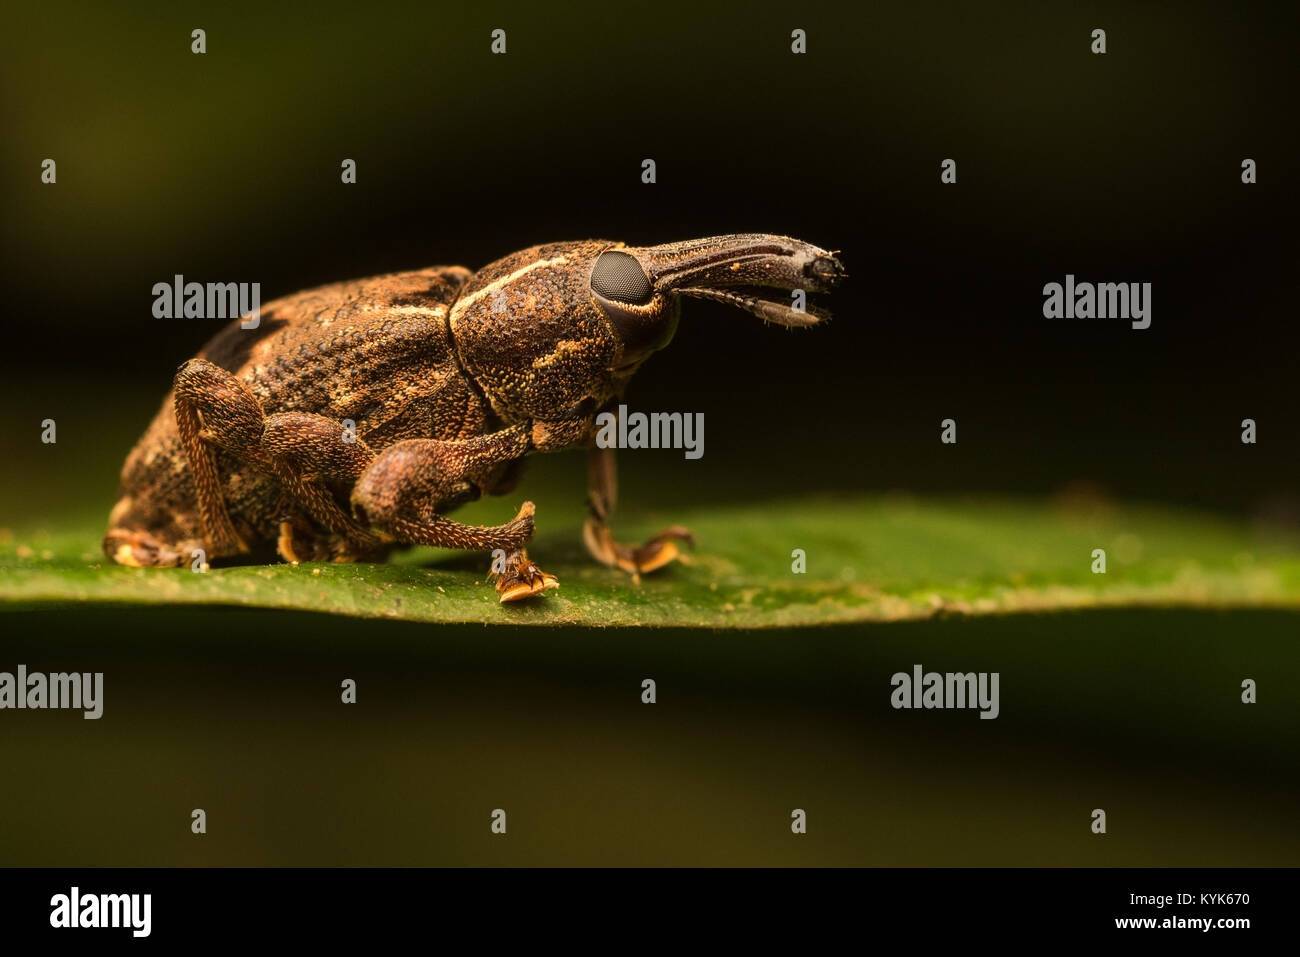 A weevil from the amazon rainforest. - Stock Image